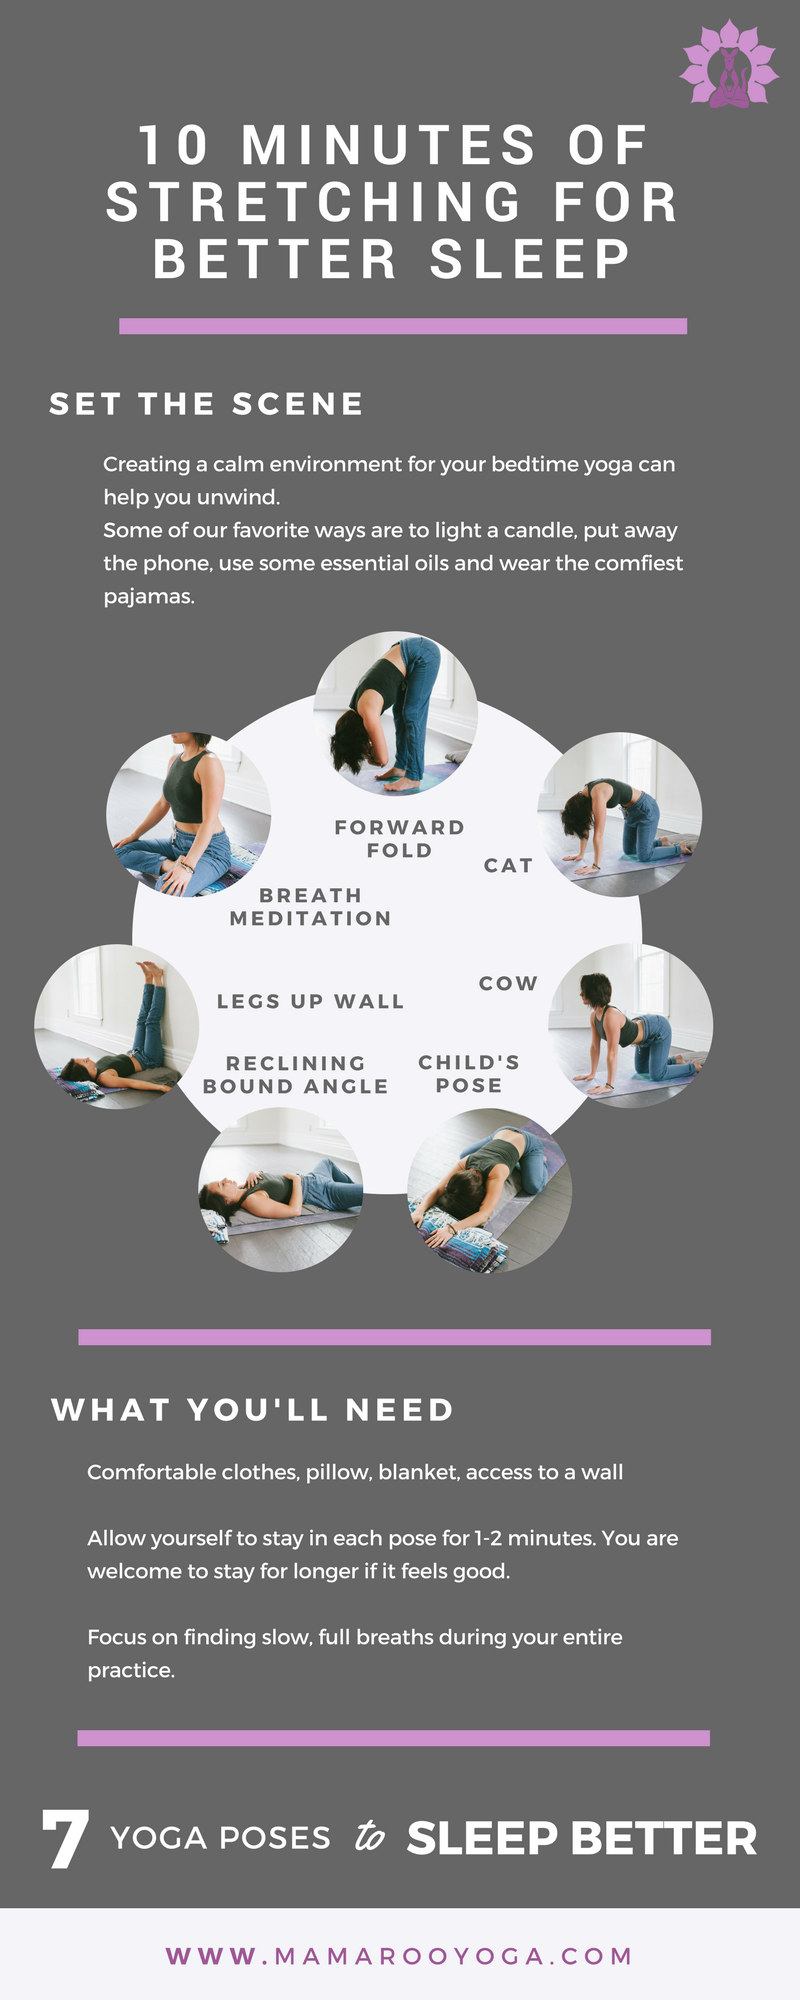 10 minutes of stretching for better sleep graphic